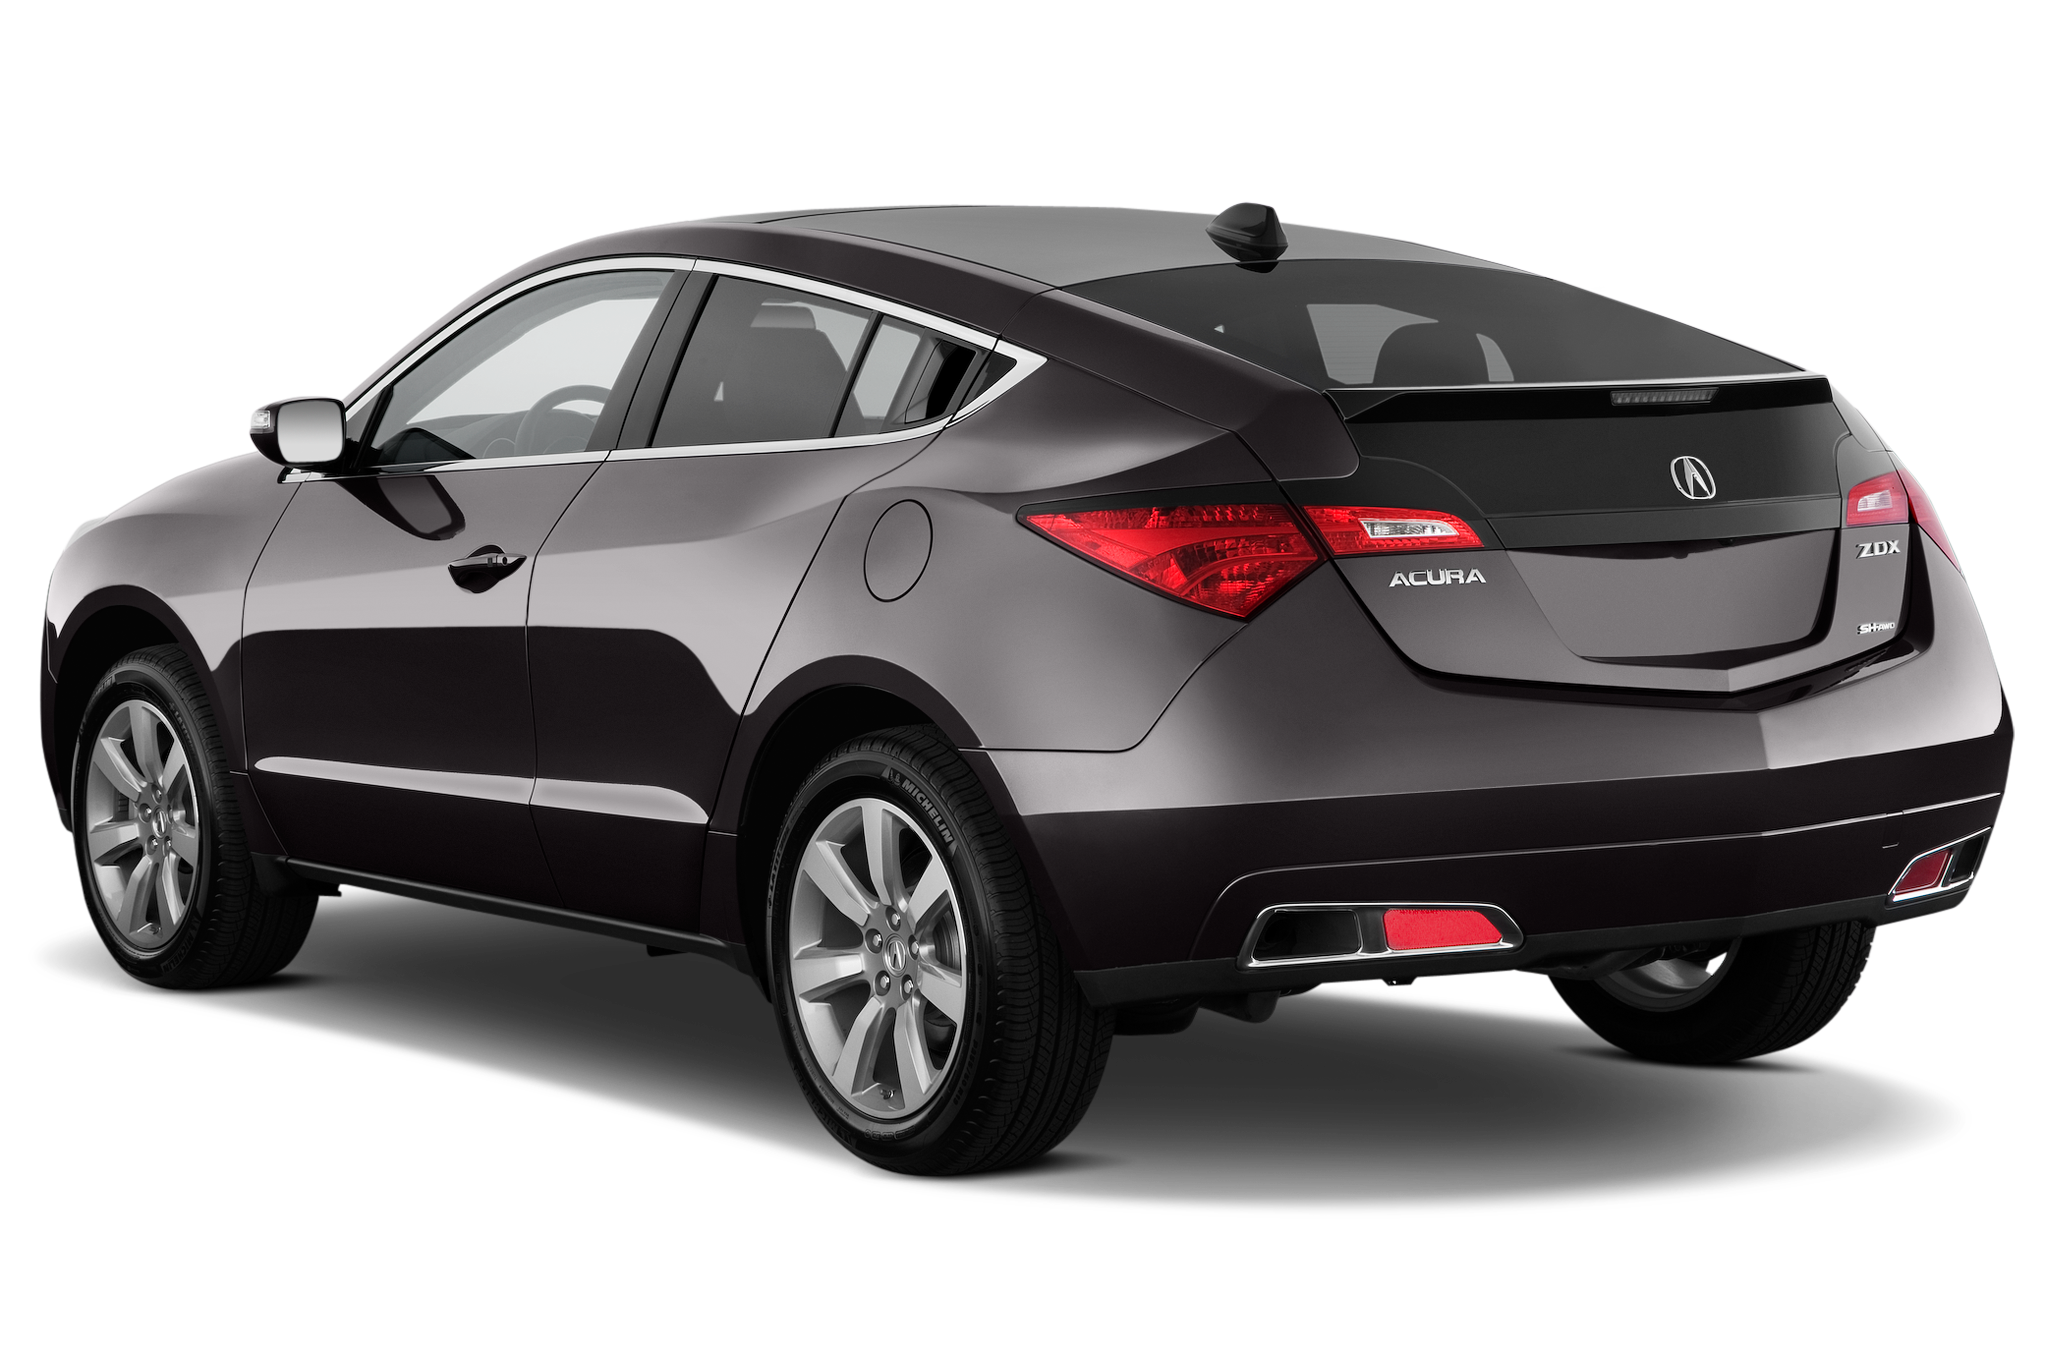 2010 Acura Zdx Crossover Revealed